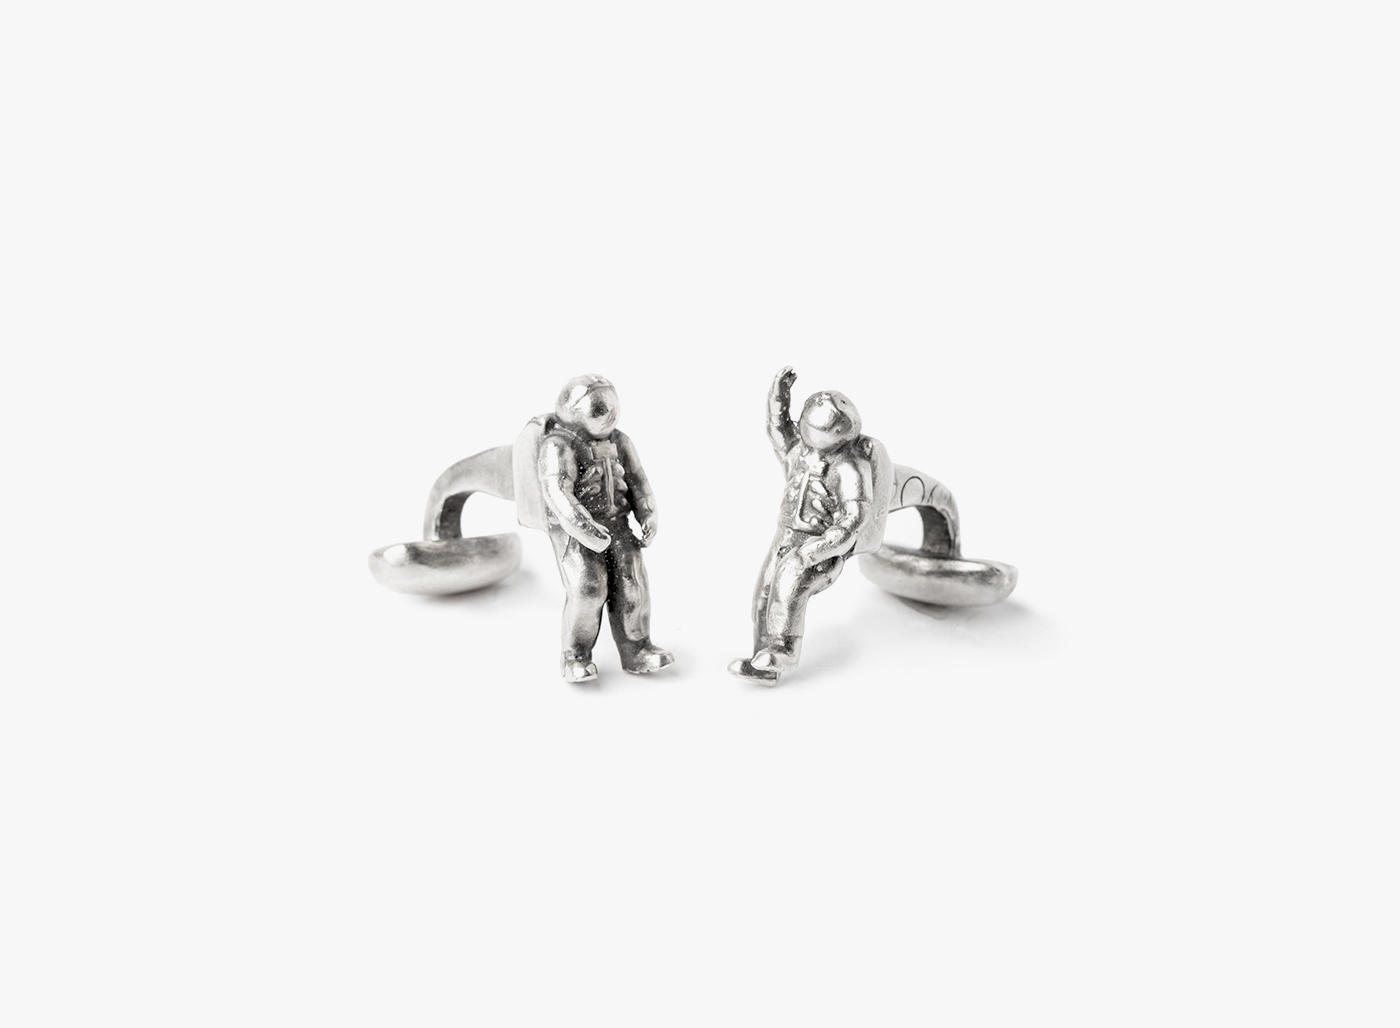 Image of Astronaut Cufflinks